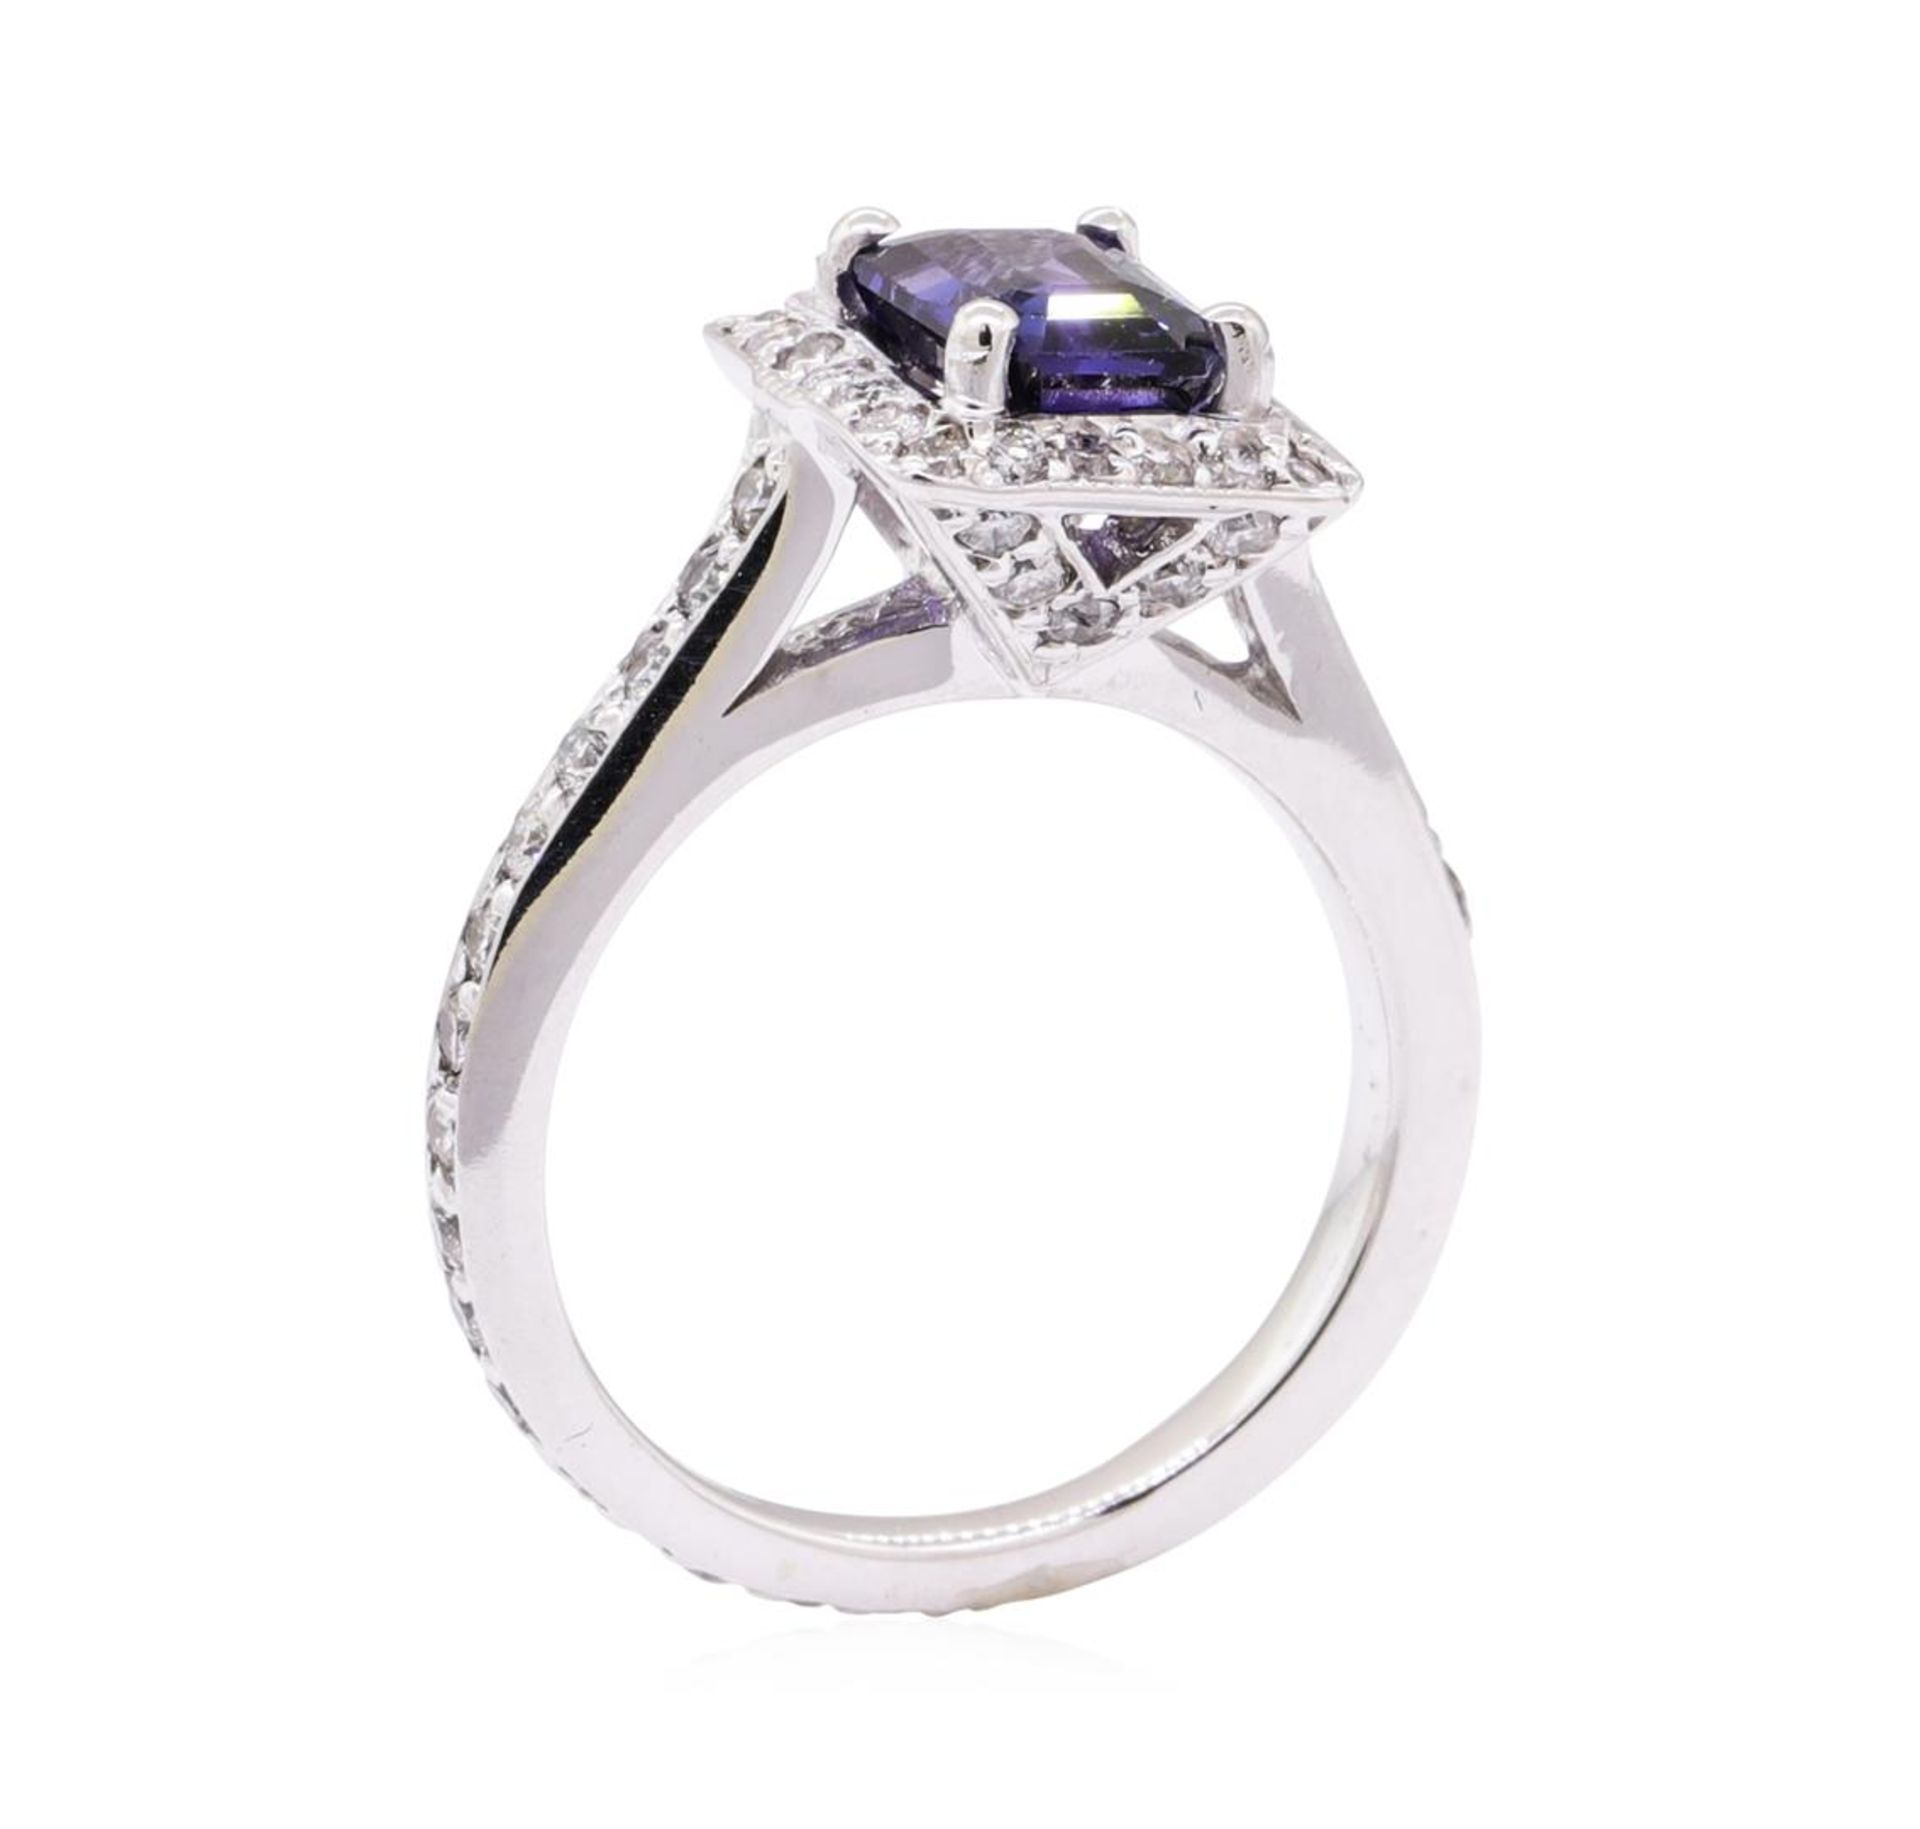 2.21 ctw Blue Sapphire And Diamond Ring - 14KT White Gold - Image 4 of 5